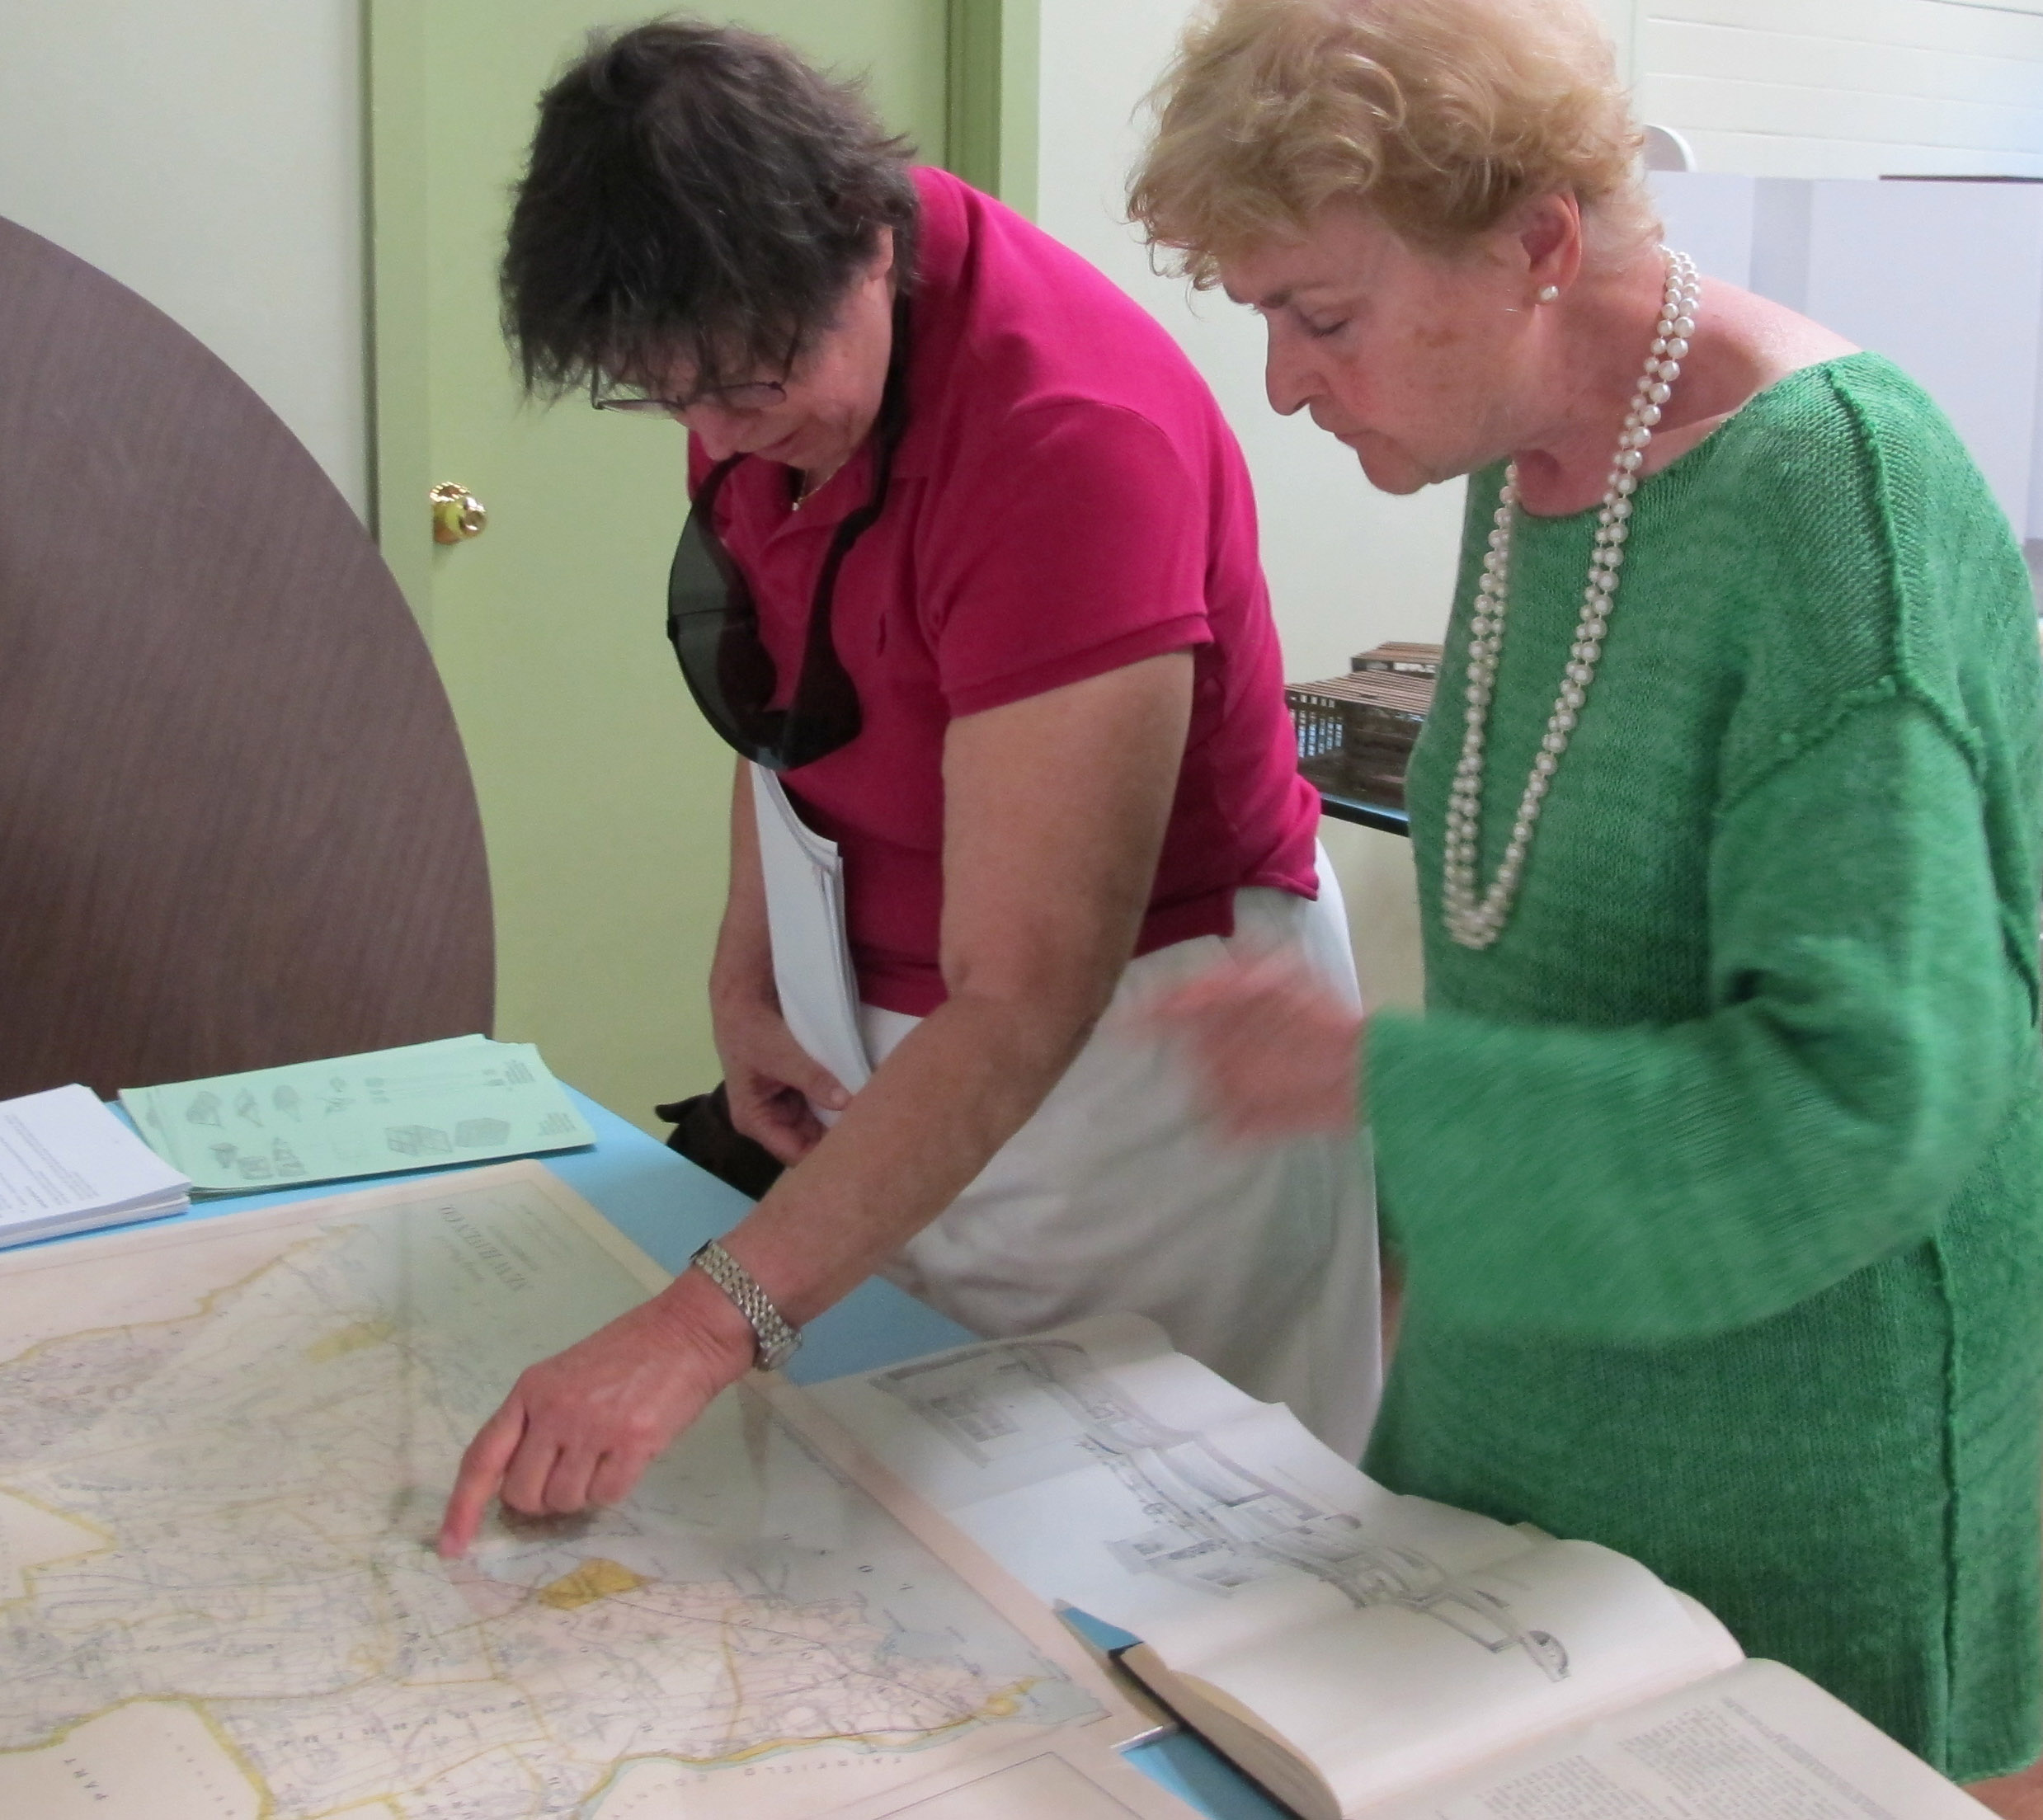 Looking at exhibits and maps